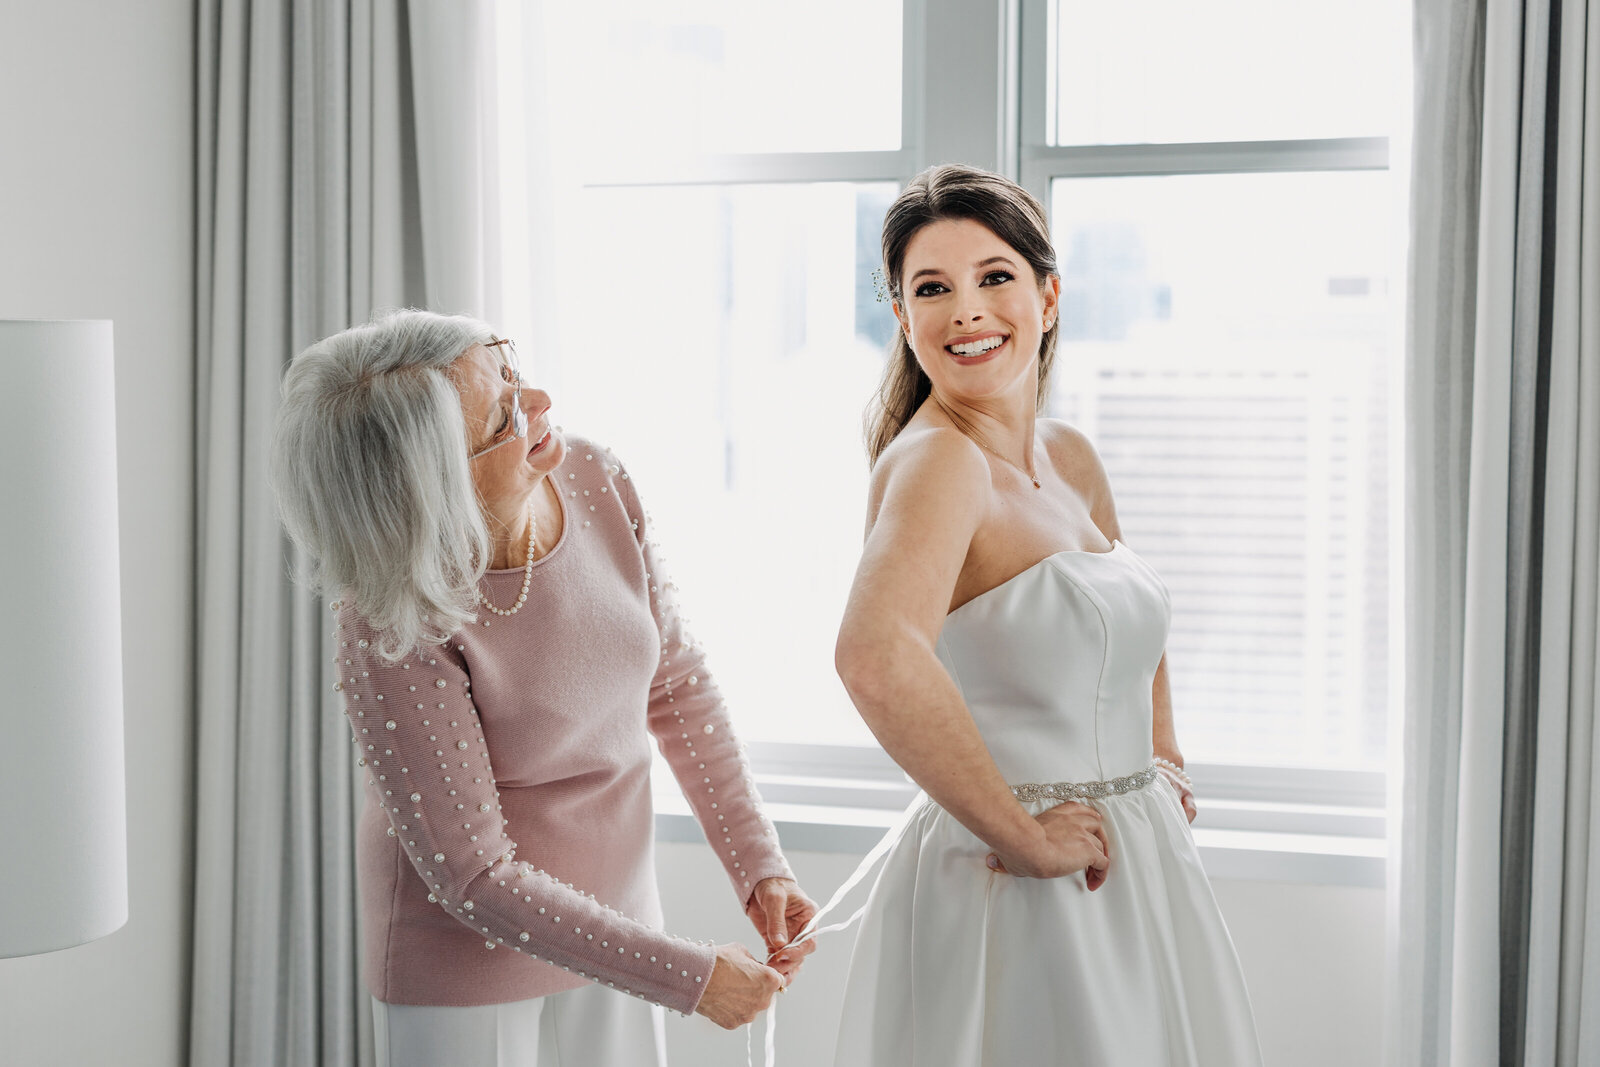 mom helping bride into wedding dress